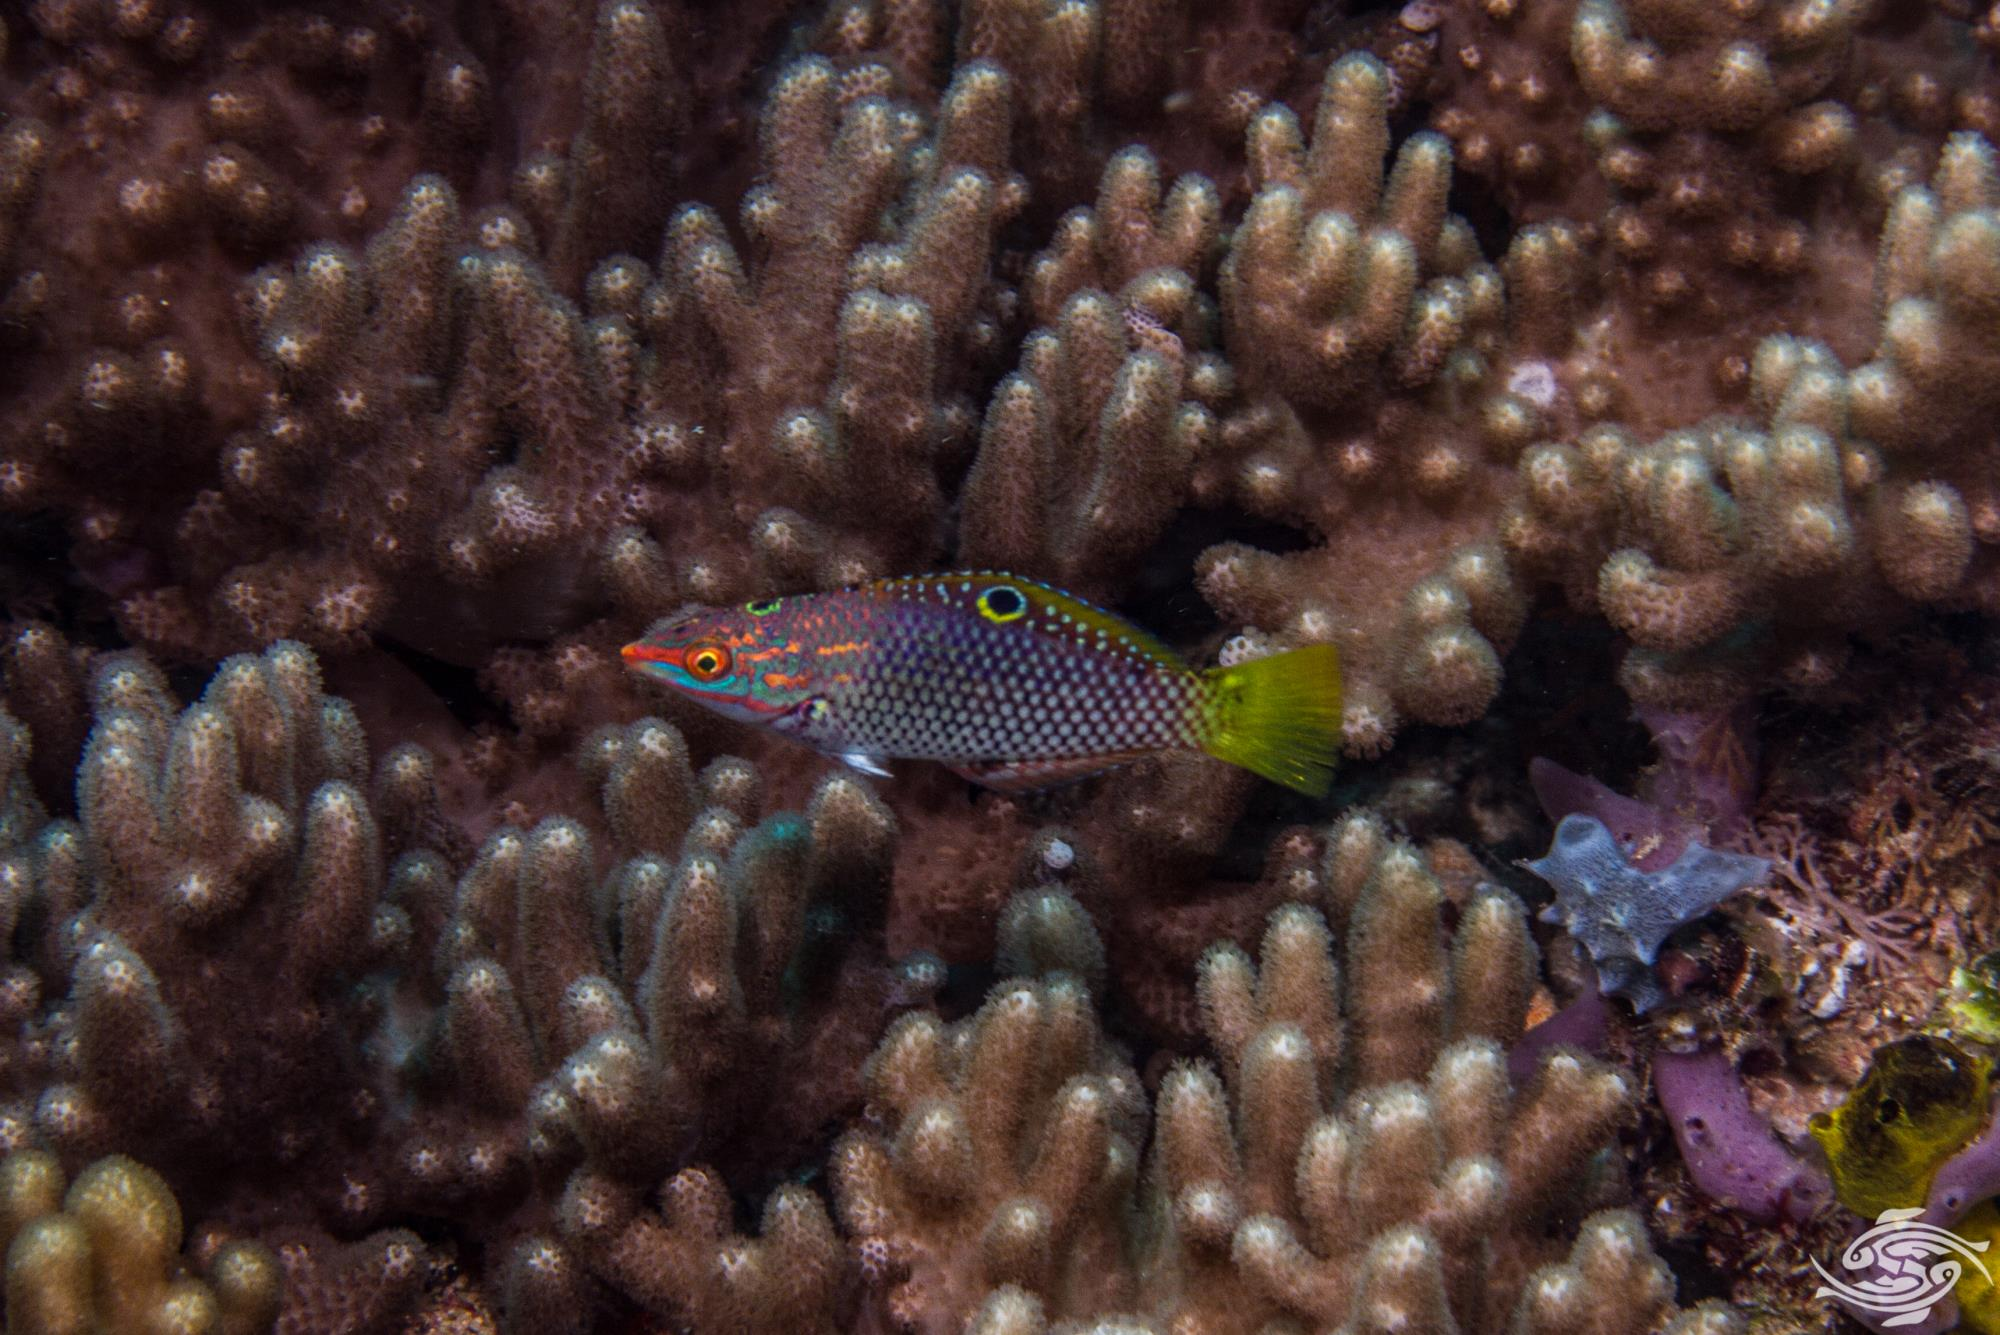 checkerboard wrasse (Halichoeres hortulanus) also known as the marble or hortulanus wrasse